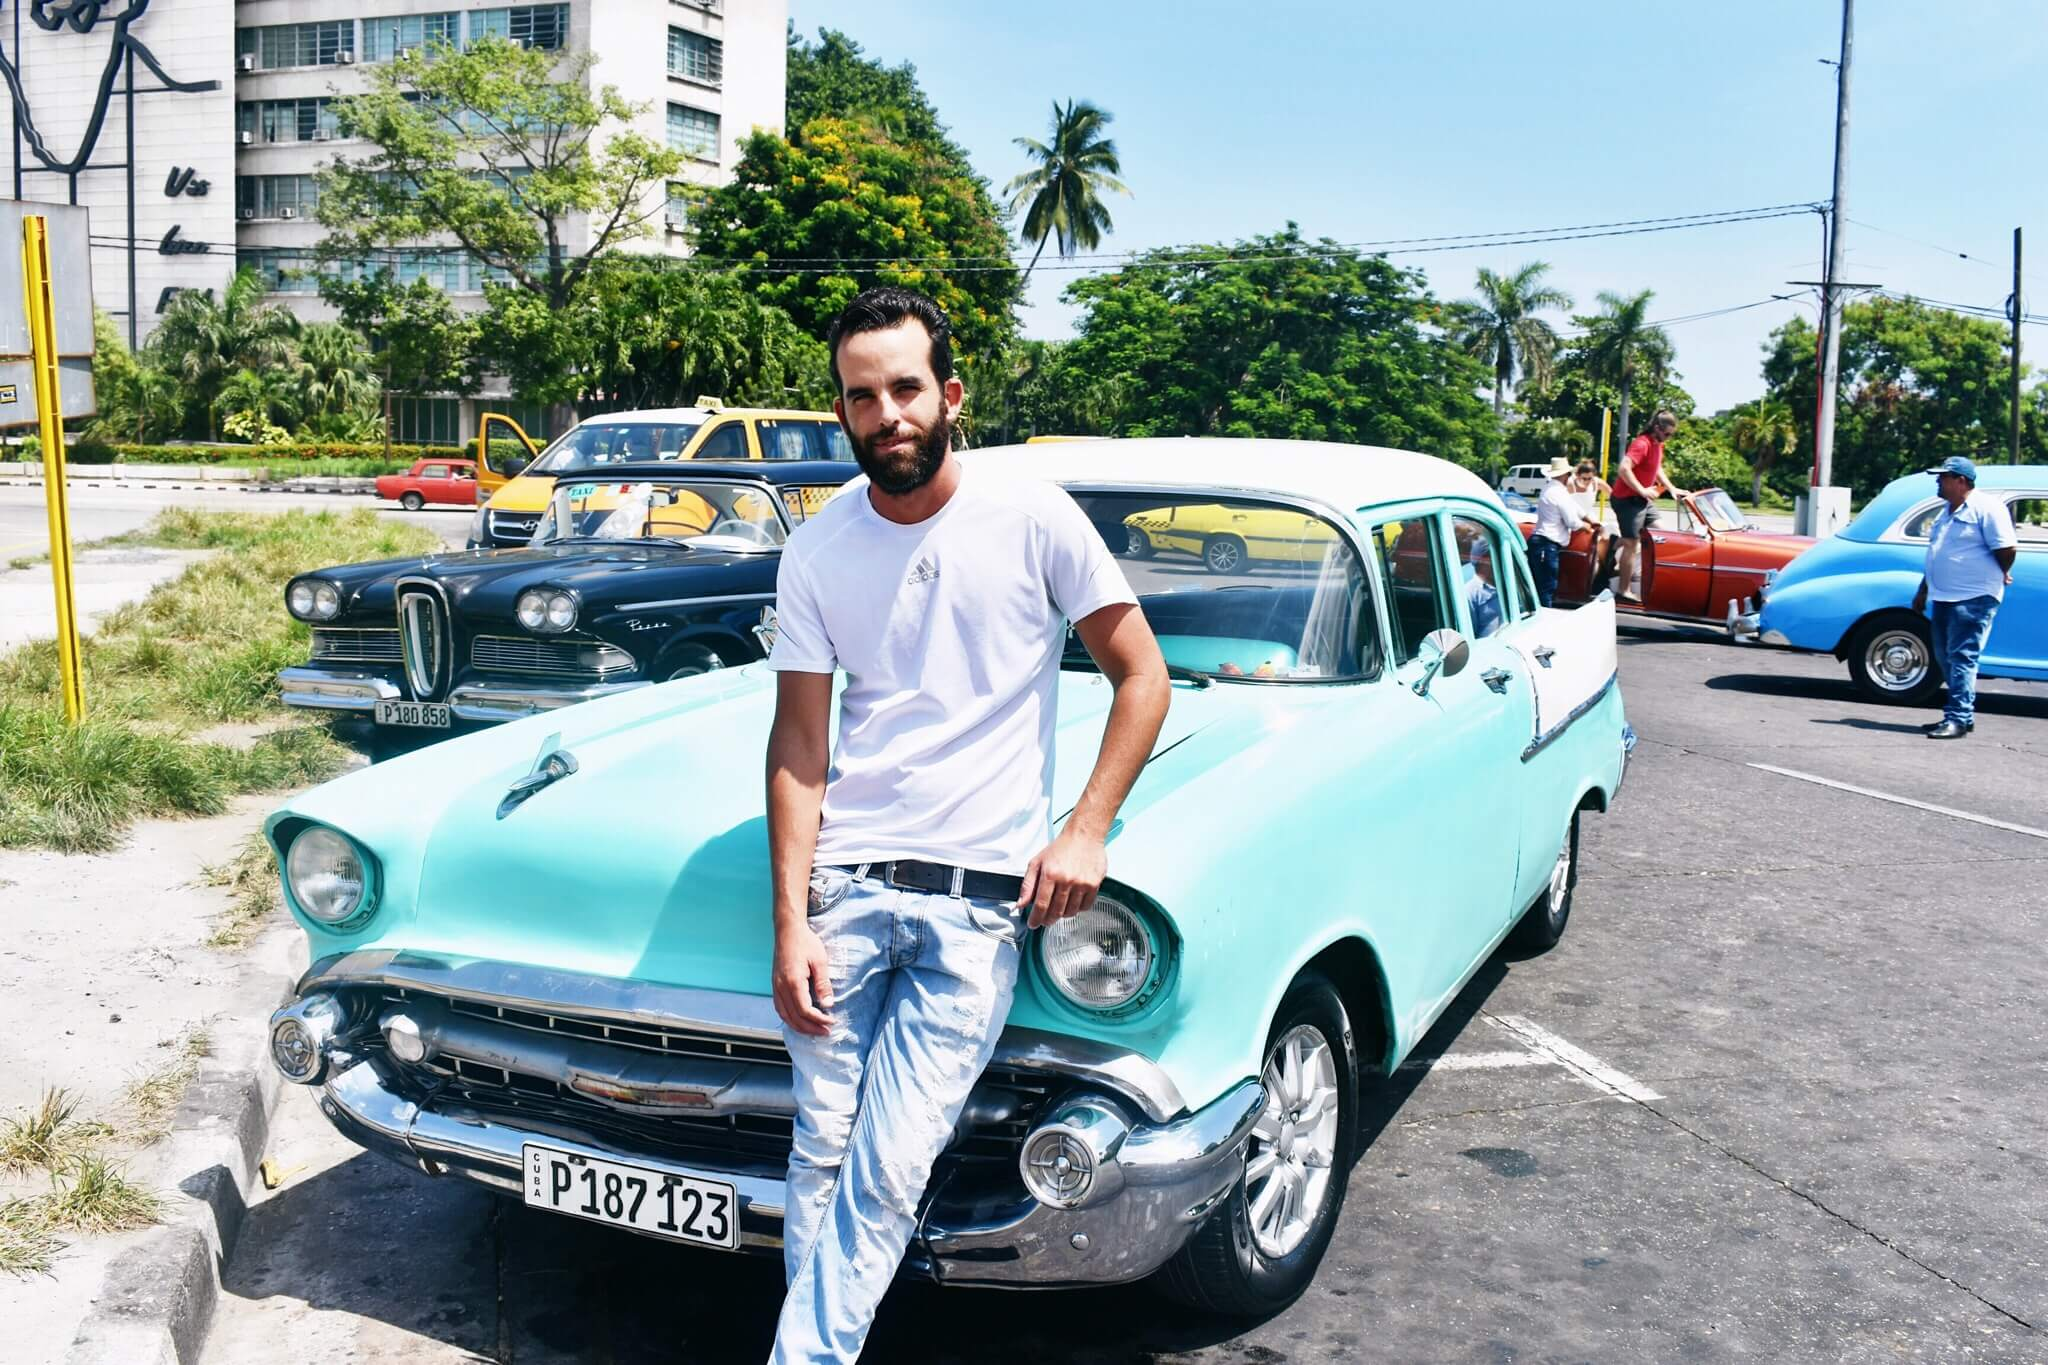 Alejandro standing in front of his classic car at Plaza de la Revolucion